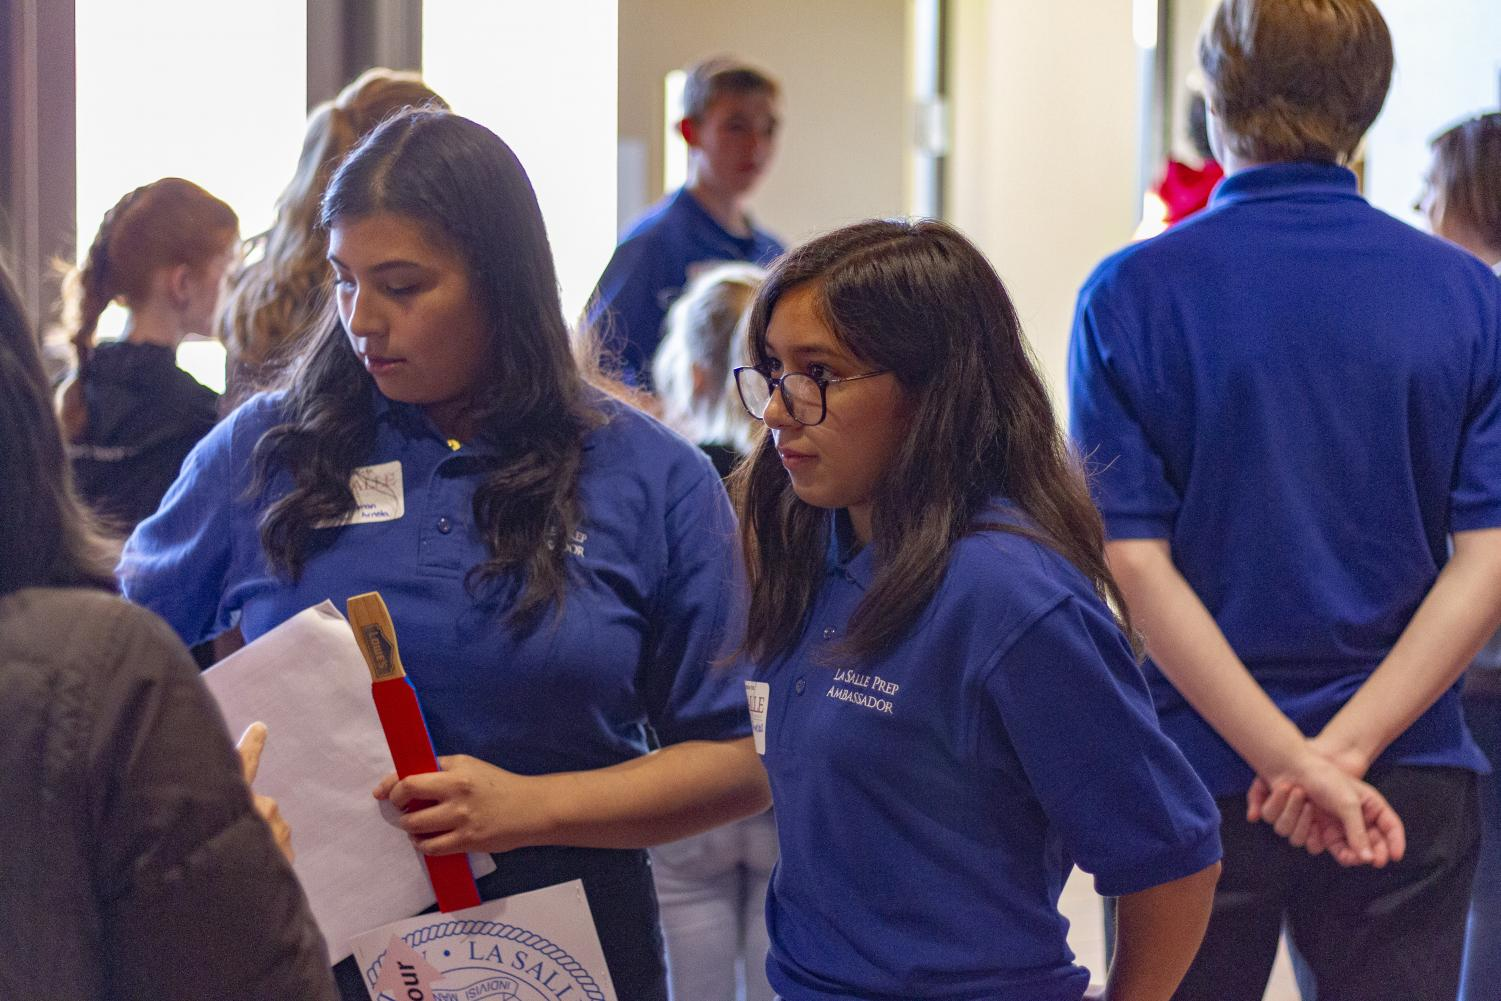 Student+ambassadors+give+tours+and+answer+questions.